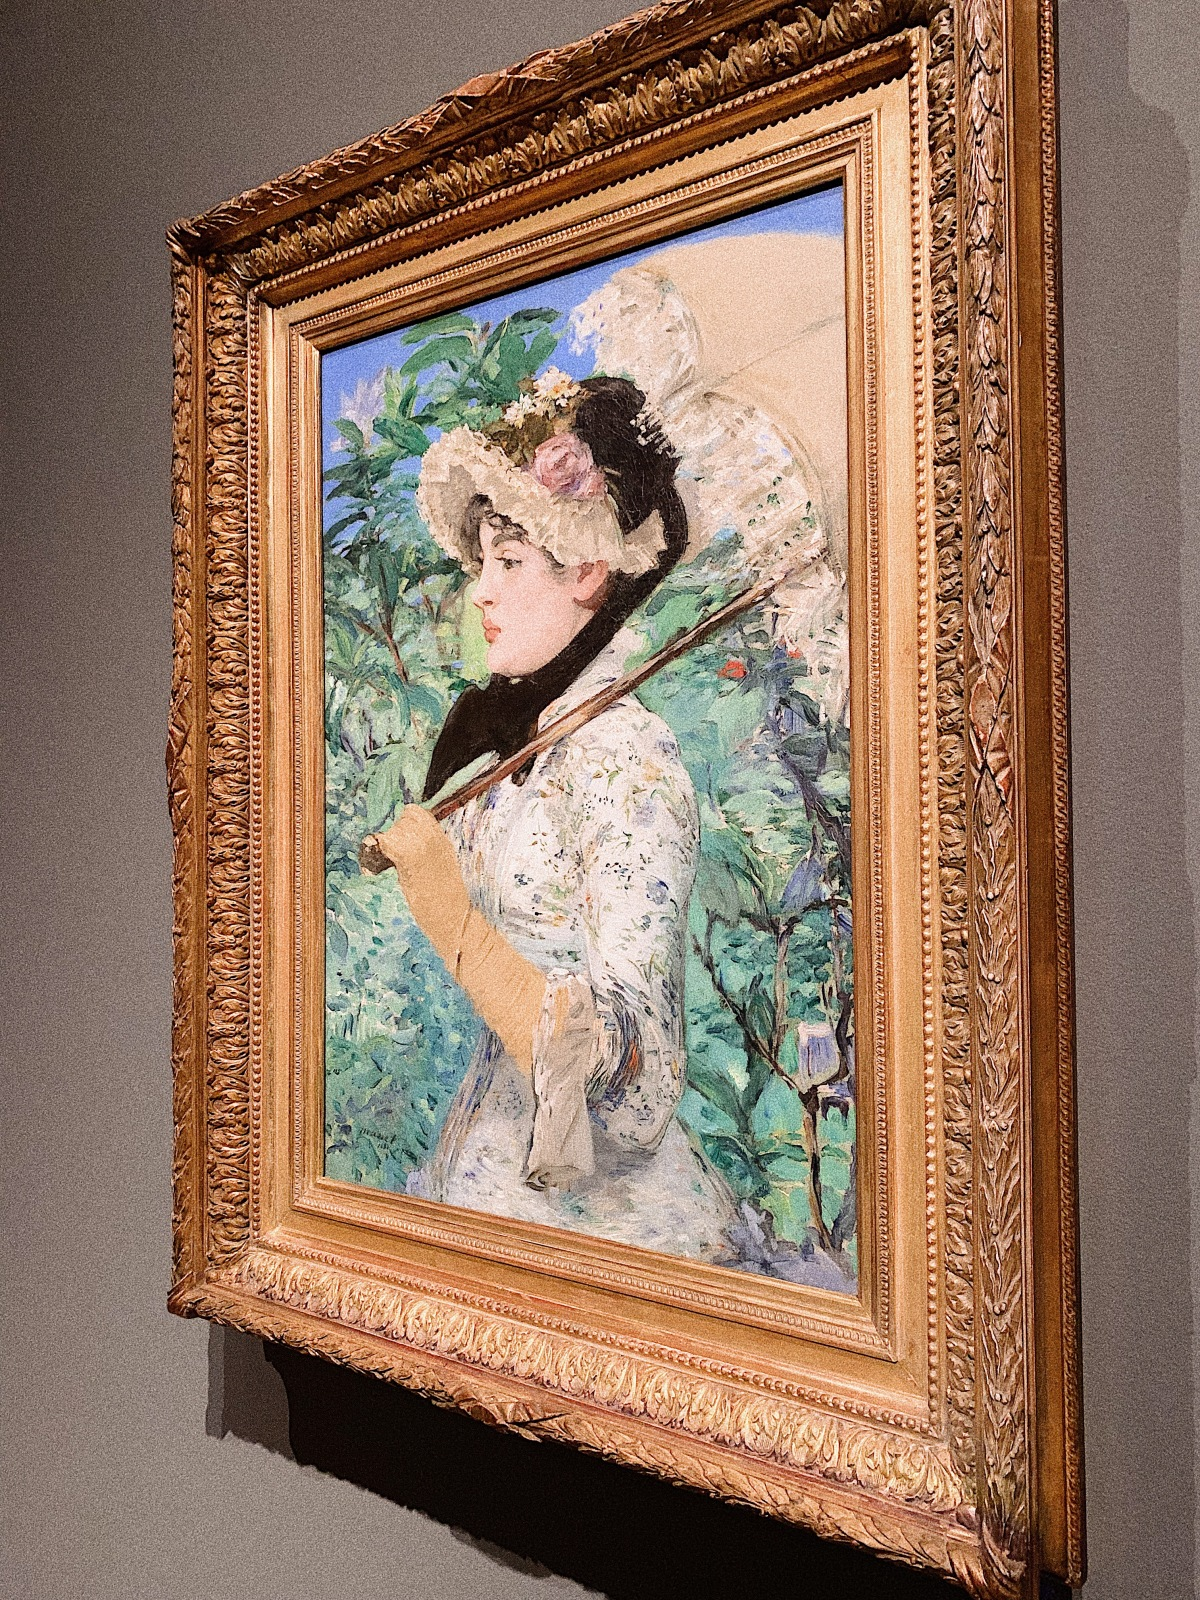 Edouard Manet, Getty Museum, Manet, Manet and Modern Beauty, Art, Manet's Spring, french modernist painting